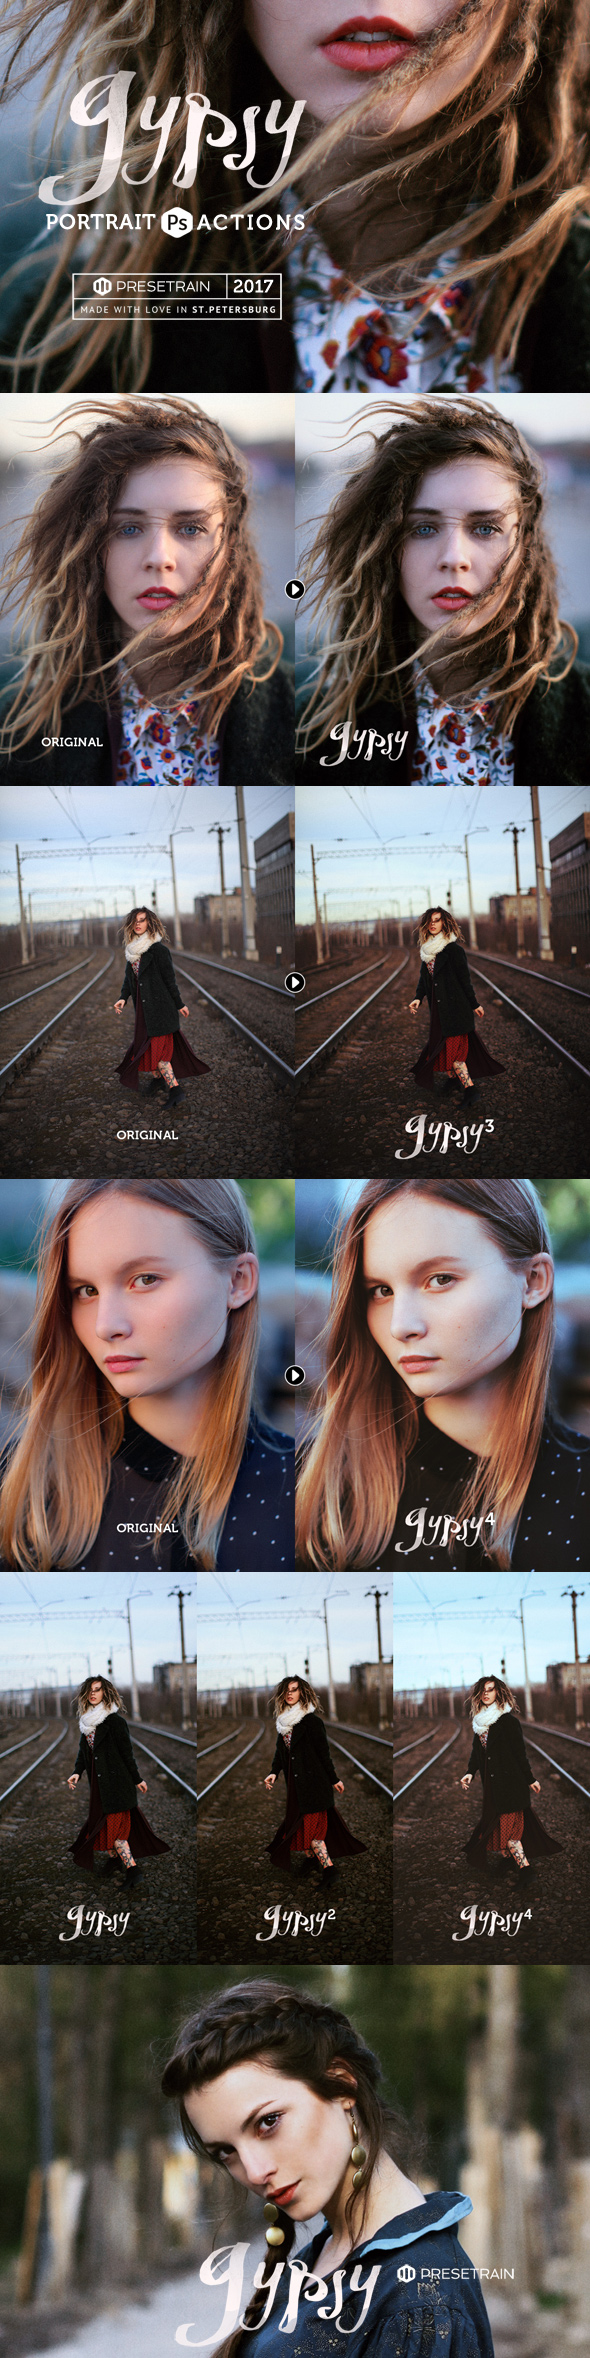 Gypsy Portrait Photoshop Actions - Photo Effects Actions